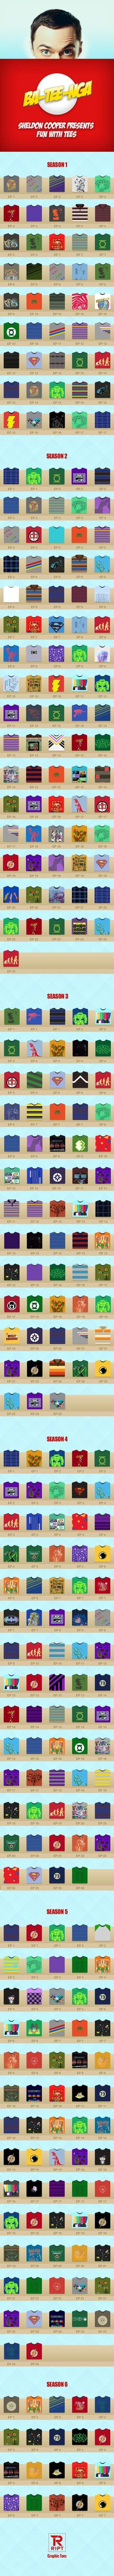 This fun little infographic lists every t-shirt Sheldon Cooper has ever wore on The Big Bang Theory.